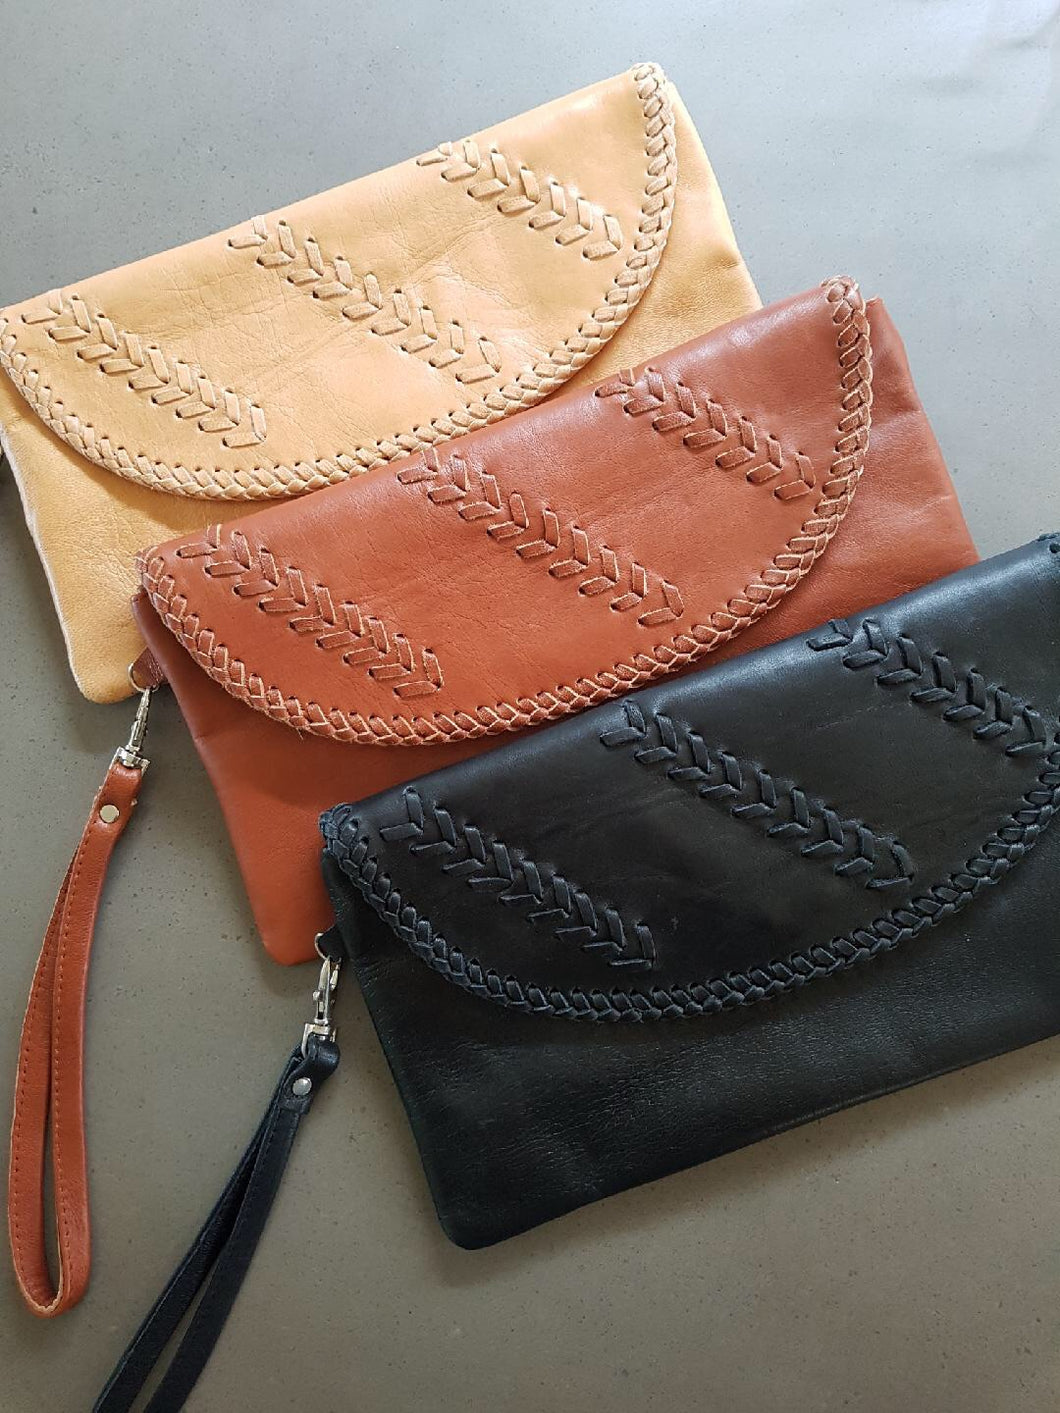 Leather Plait Clutch Bag